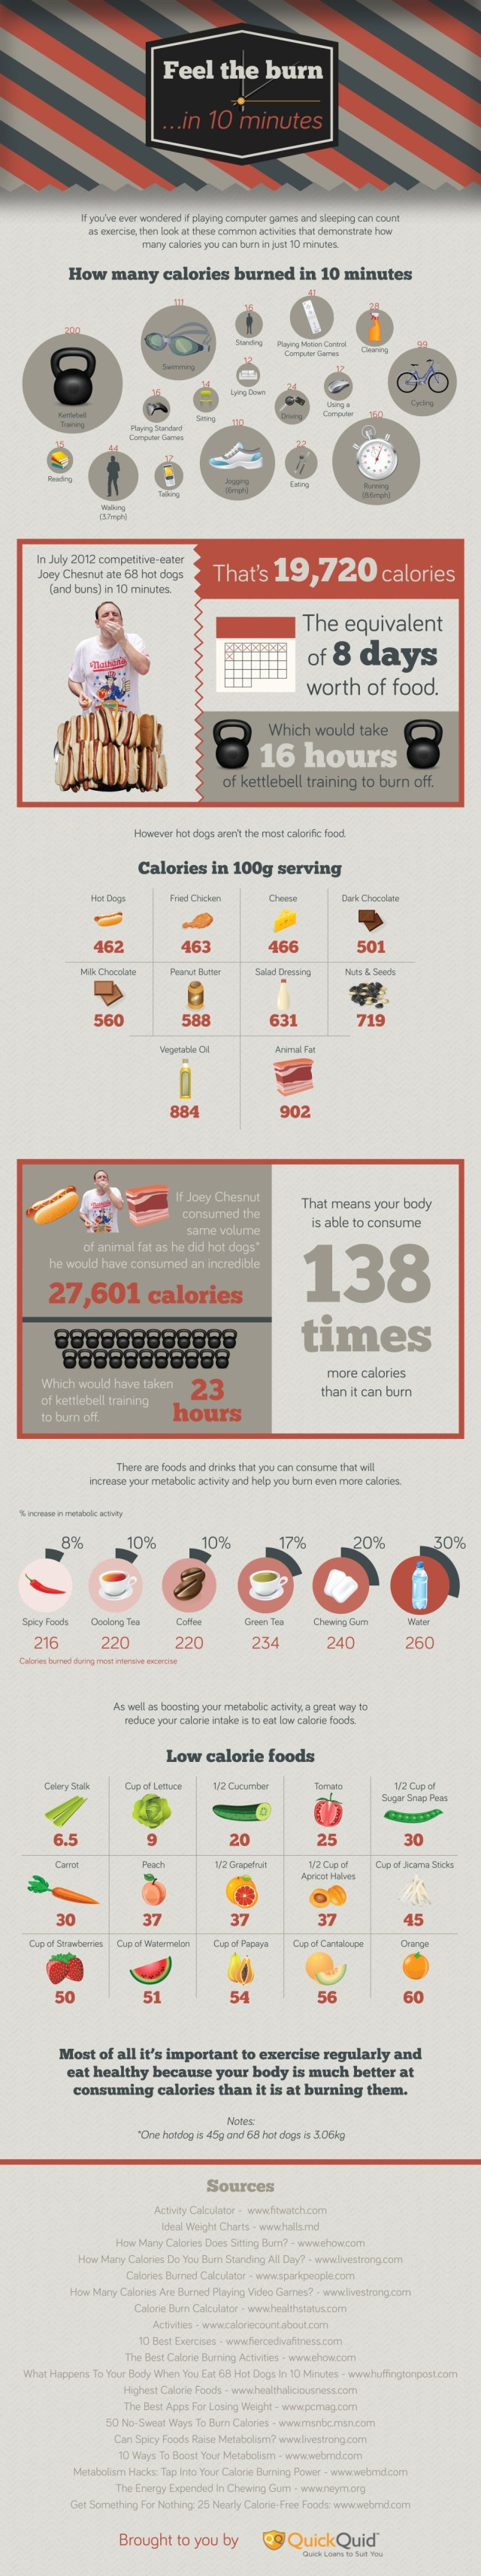 Feel The Burn - Calories in 10 Minutes